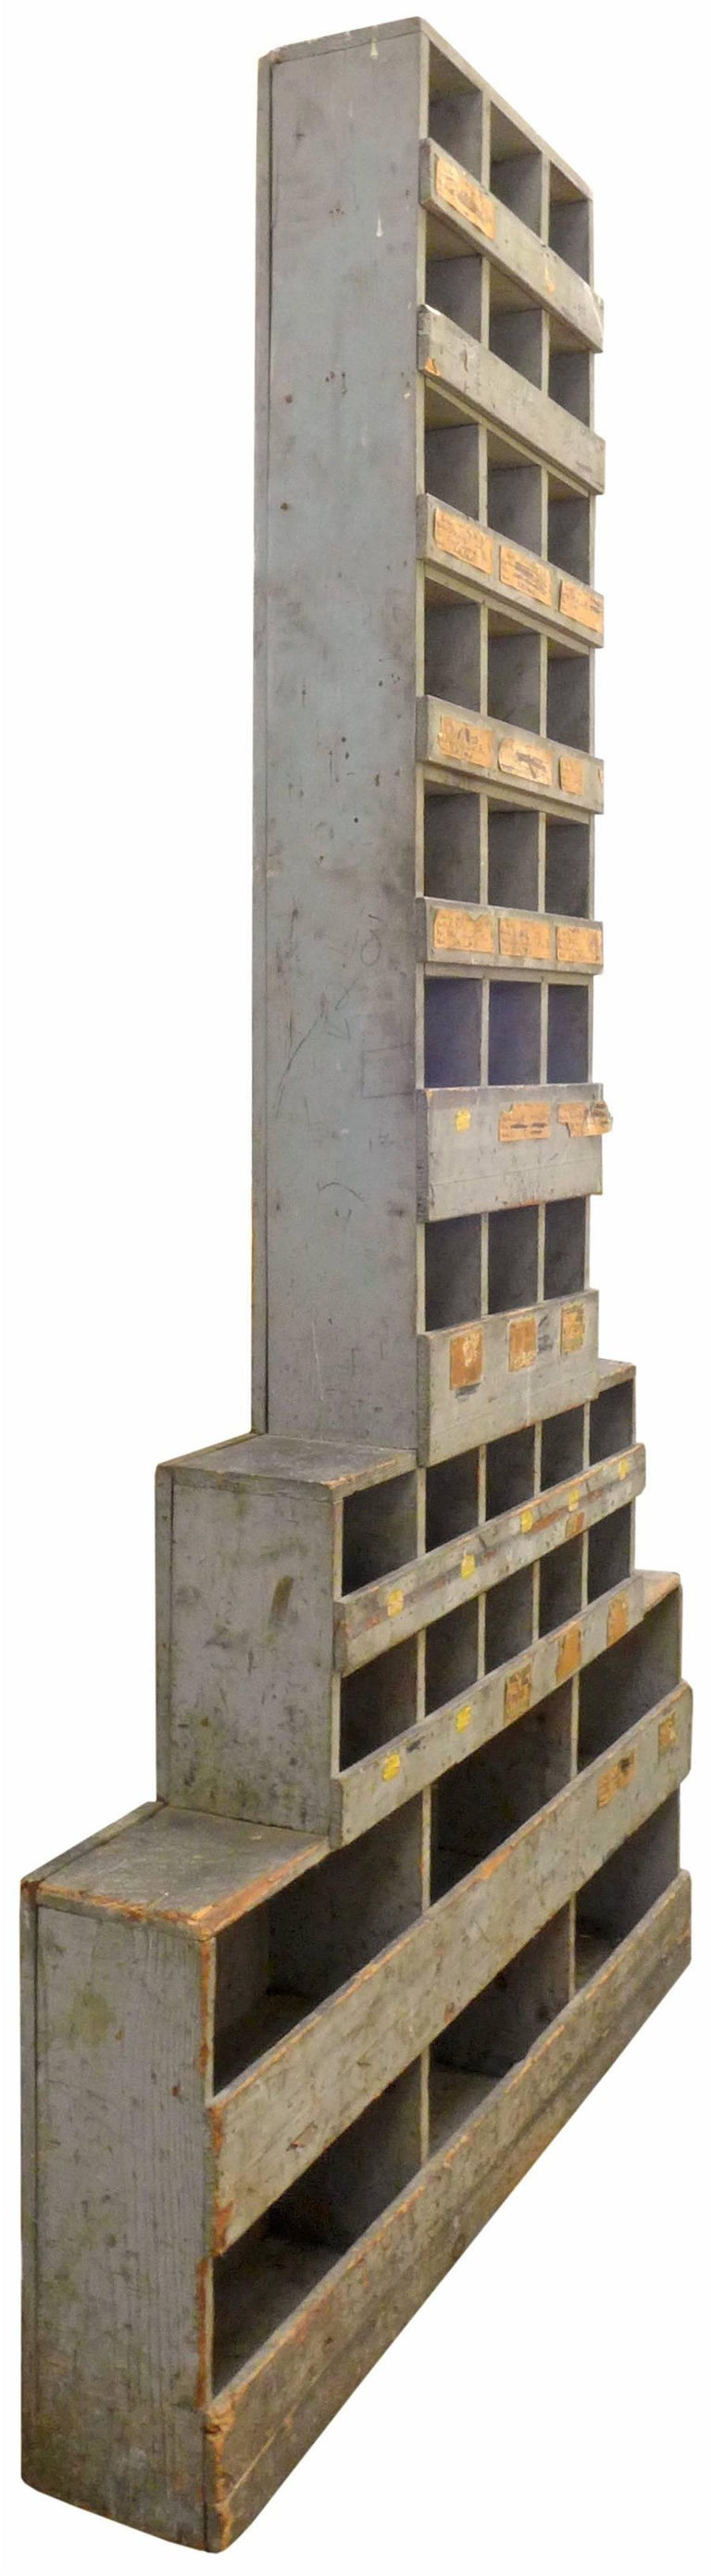 A spectacular, tall and stepped, Machine Age-inspired skyscraper cabinet. Primitive yet architecturally inspired, this unusual form was likely originally used to organize hardware for a hardware store or workshop. A wonderful distressed patina with